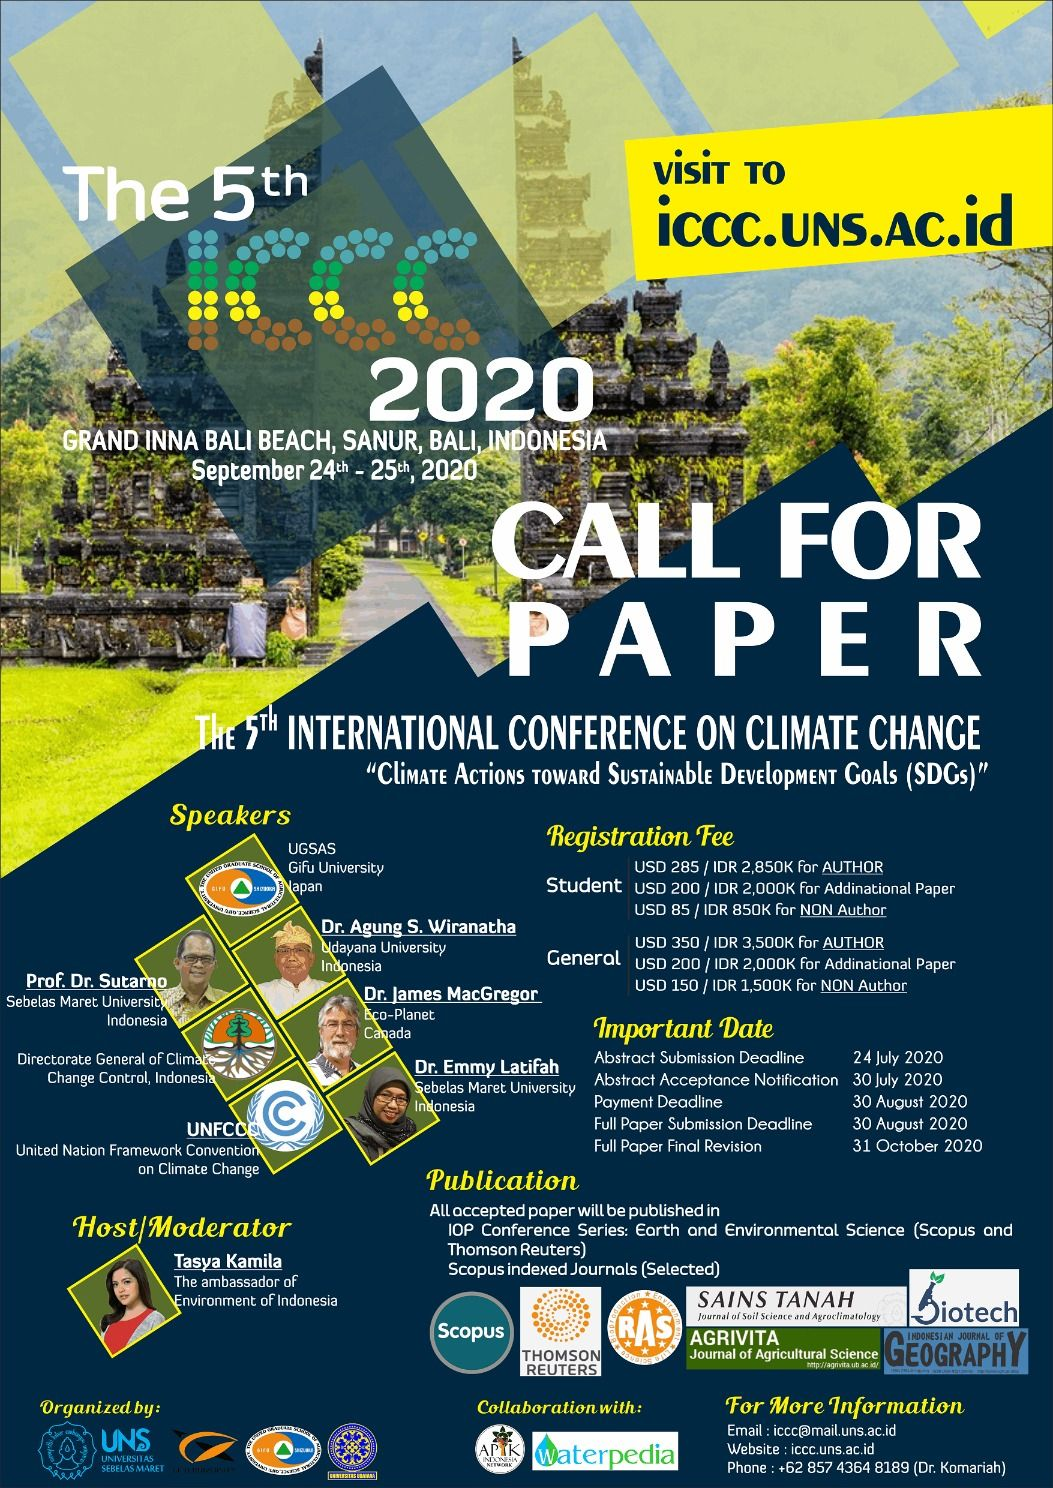 The 5th International Conference On Climate Change Iccc 2020 In 2020